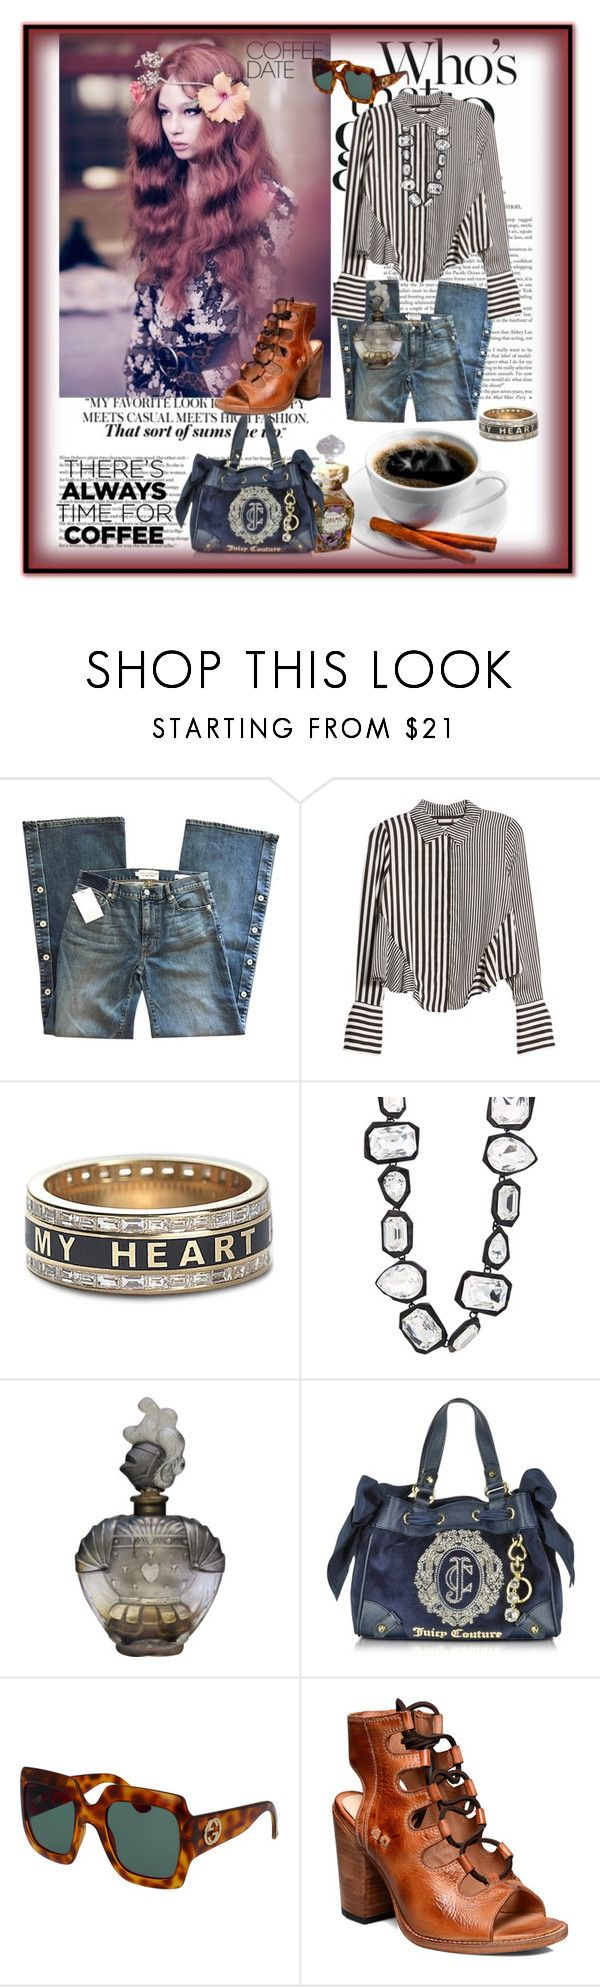 """jasinta-3788"" by jasintasss ❤ liked on Polyvore featuring Nili Lotan, Foundrae, AMBUSH, Juicy Couture, Gucci, Bed